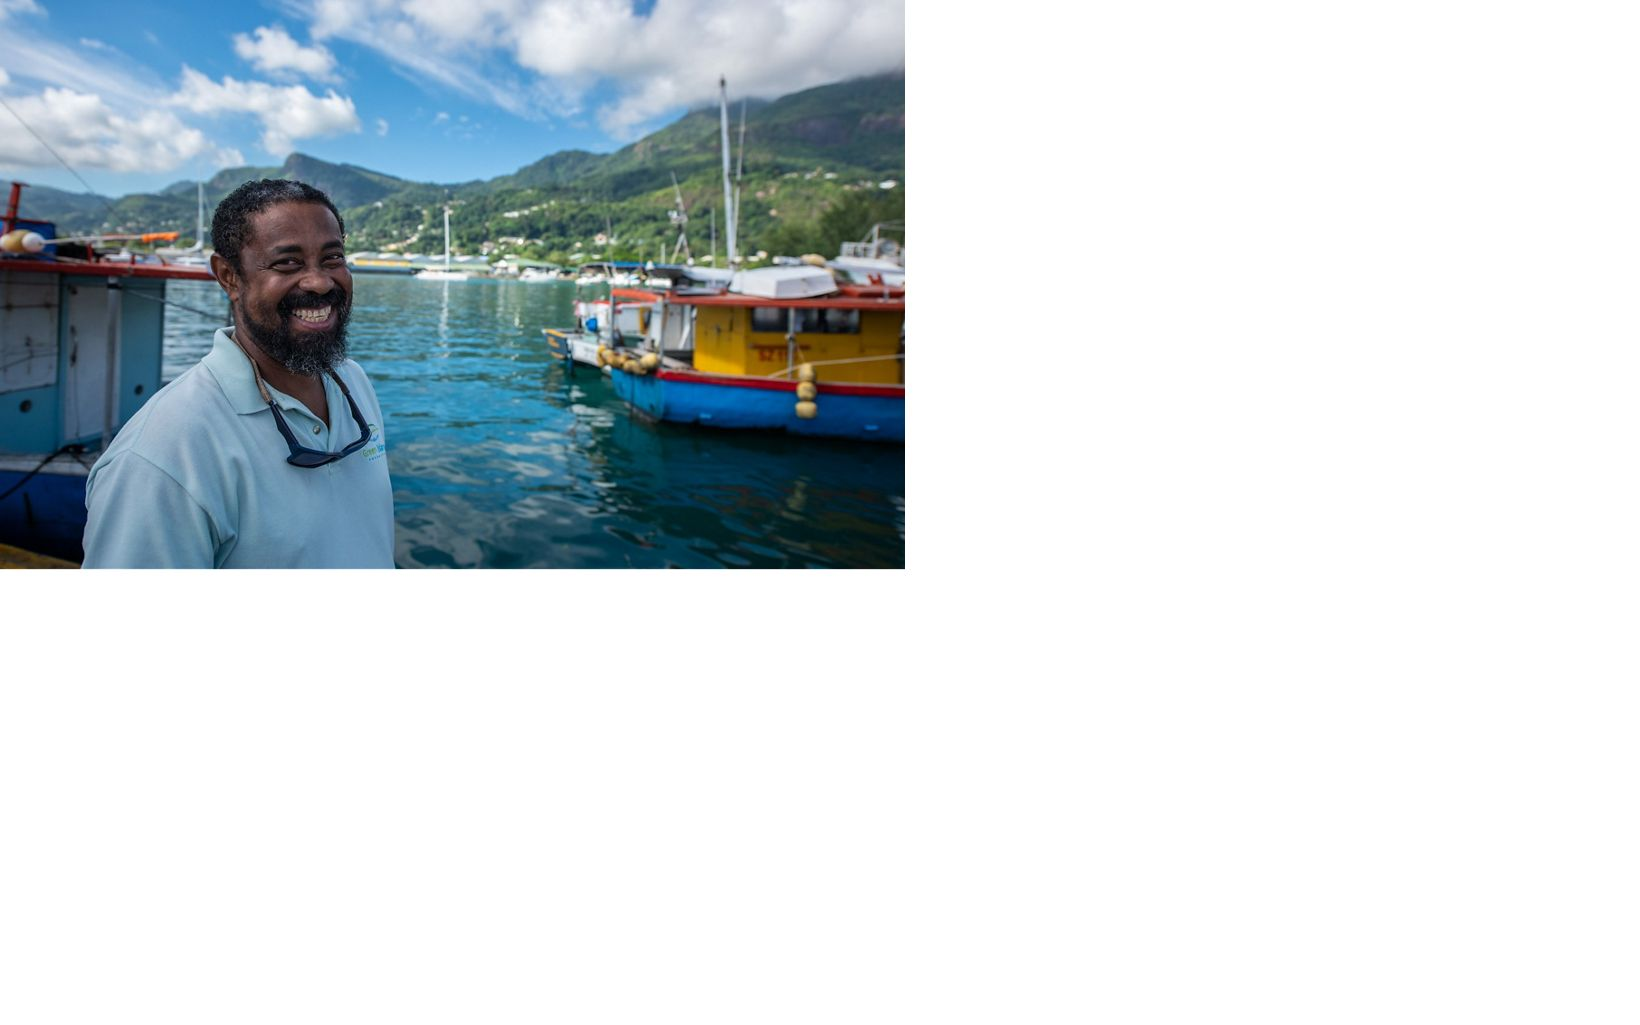 man in front of boats